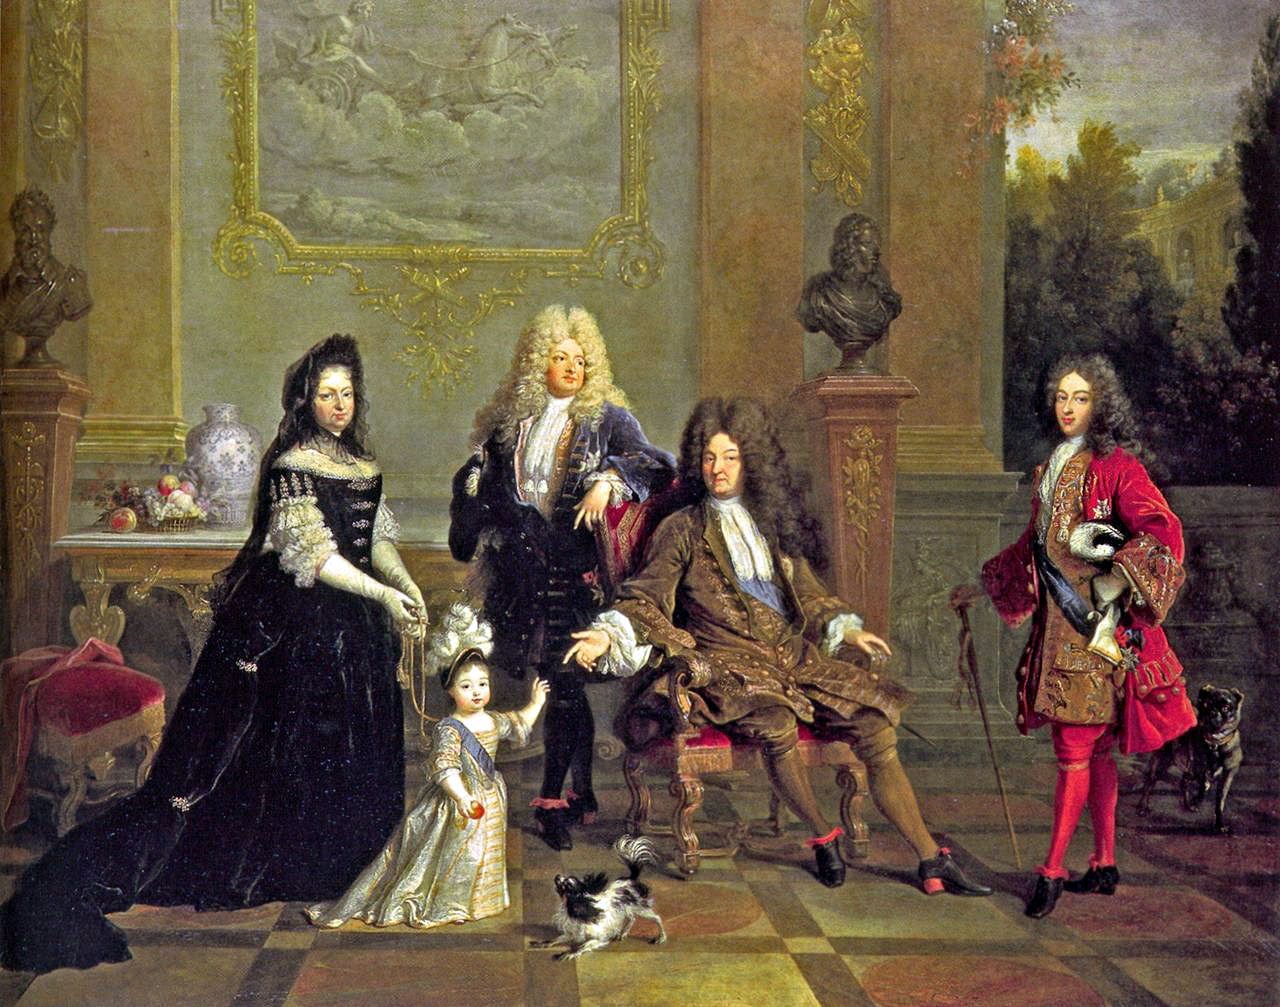 Файл:Louis XIV of France and his family attributed to Nicolas de Largillière.jpg